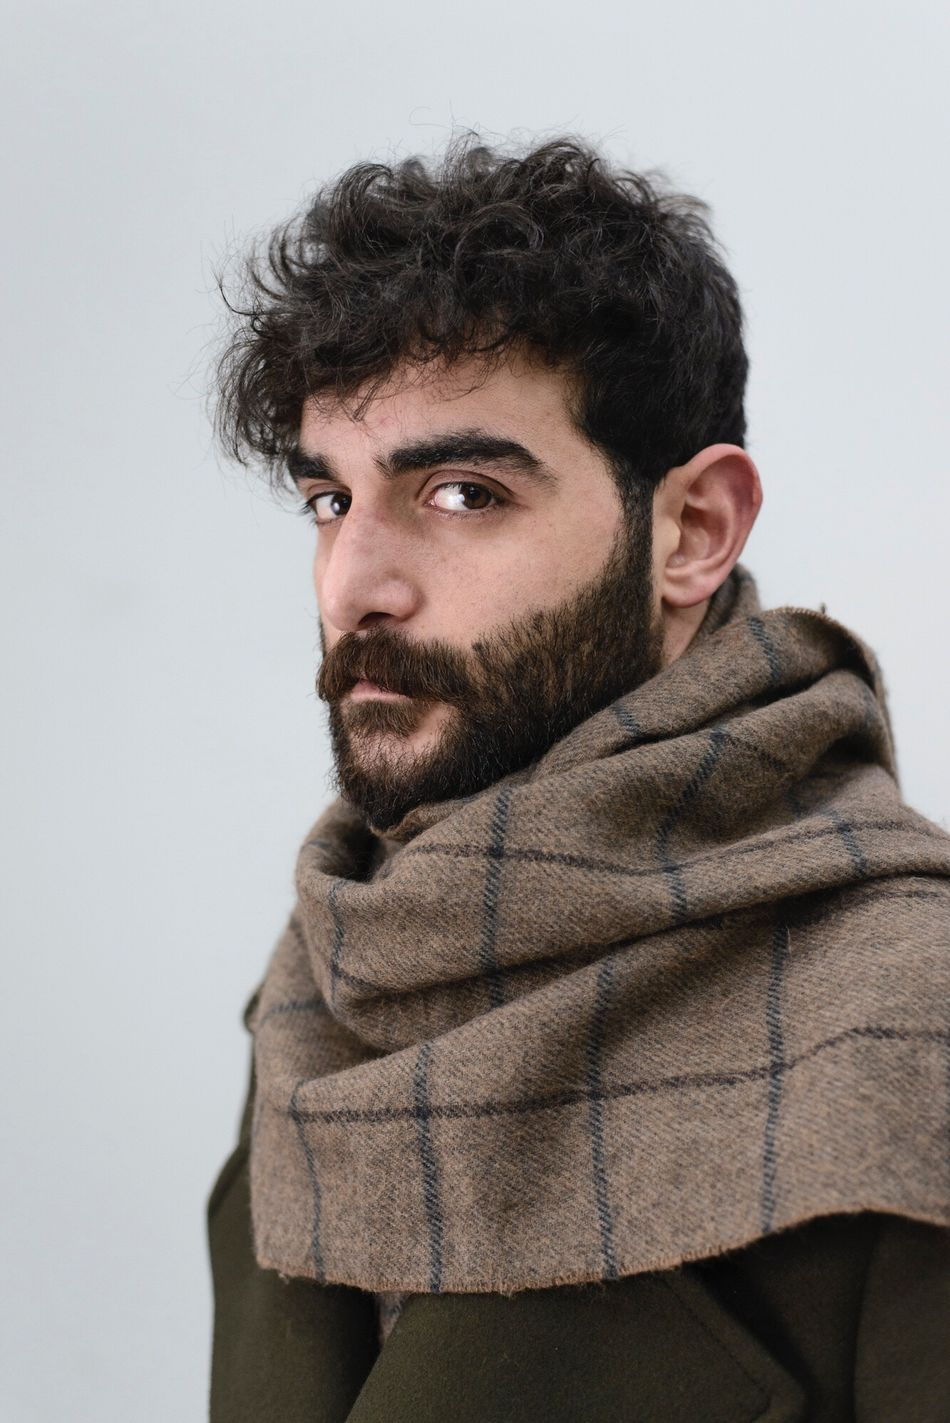 Portrait Real People One Person Looking At Camera Beard Studio Shot Young Adult Lifestyles Warm Clothing Close-up Day White Background People Adult The Week On EyeEm